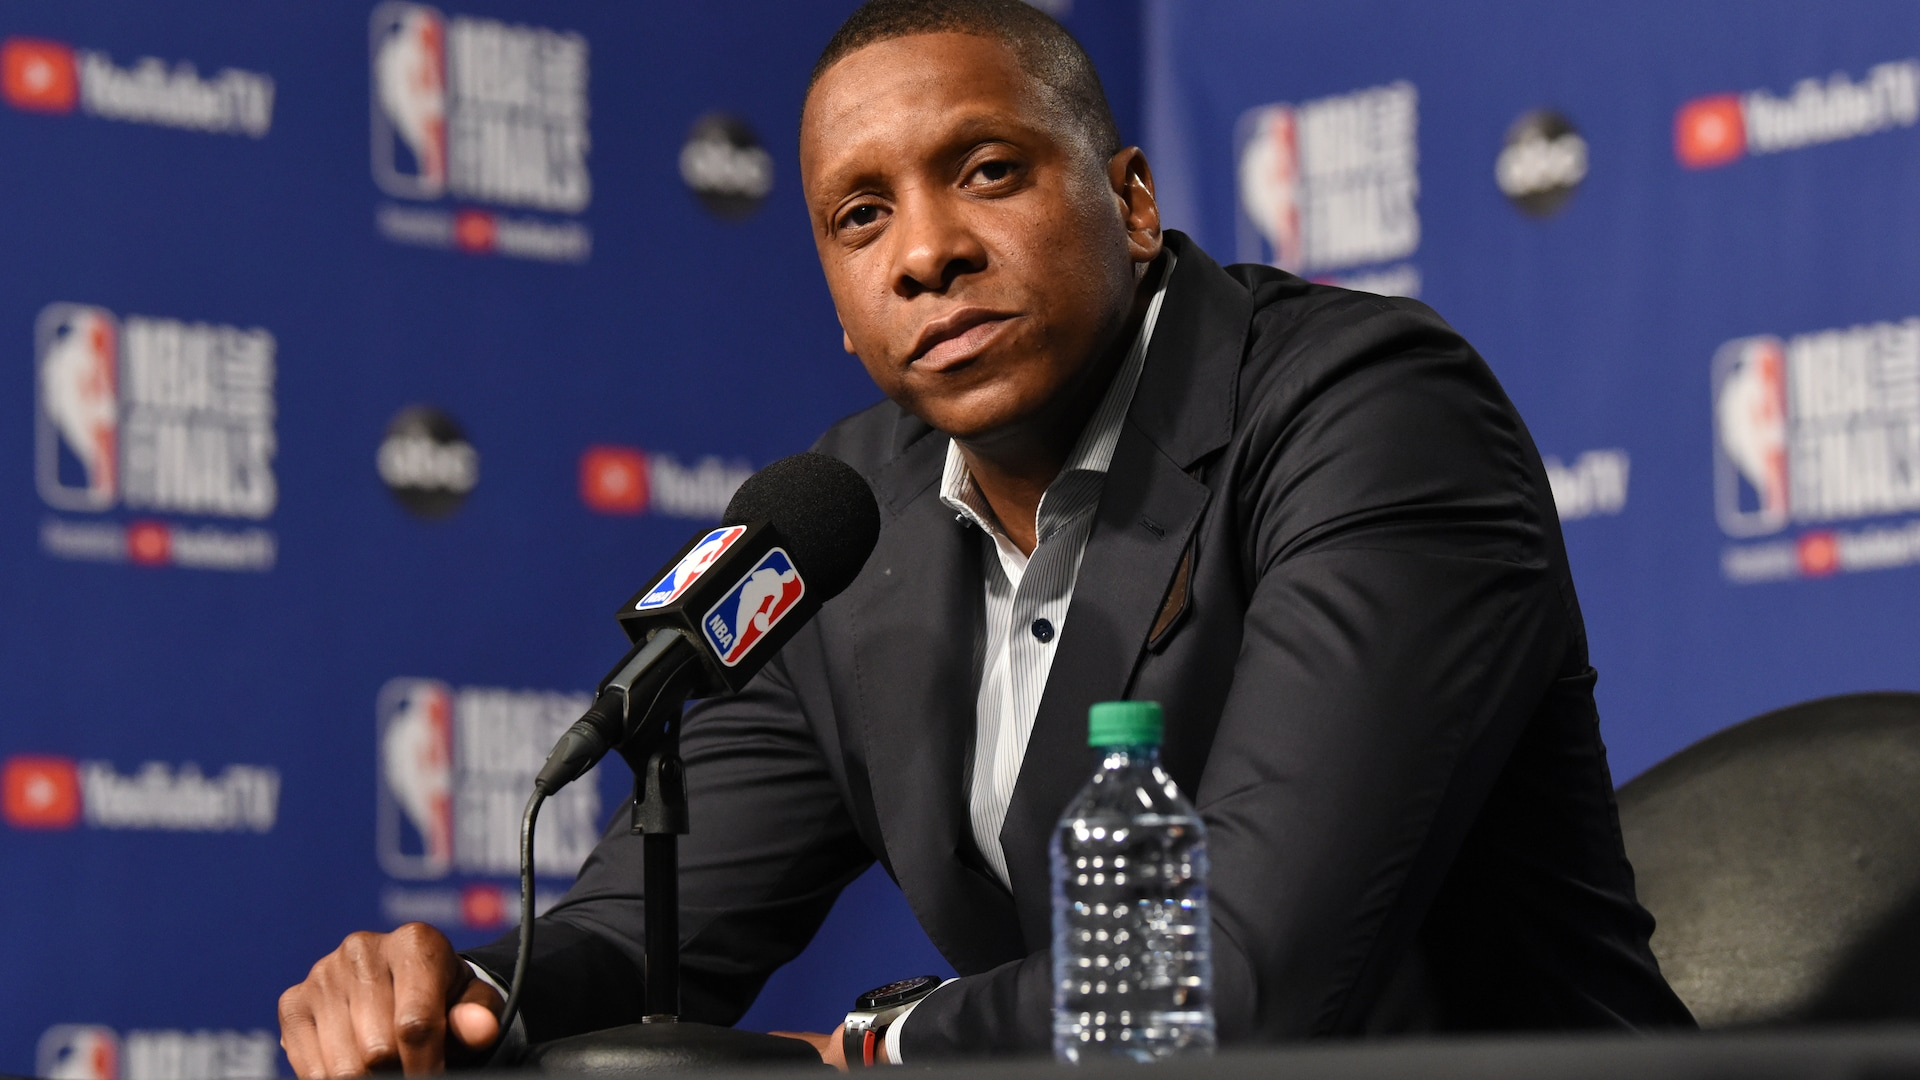 New footage shows officer shoved Masai Ujiri first